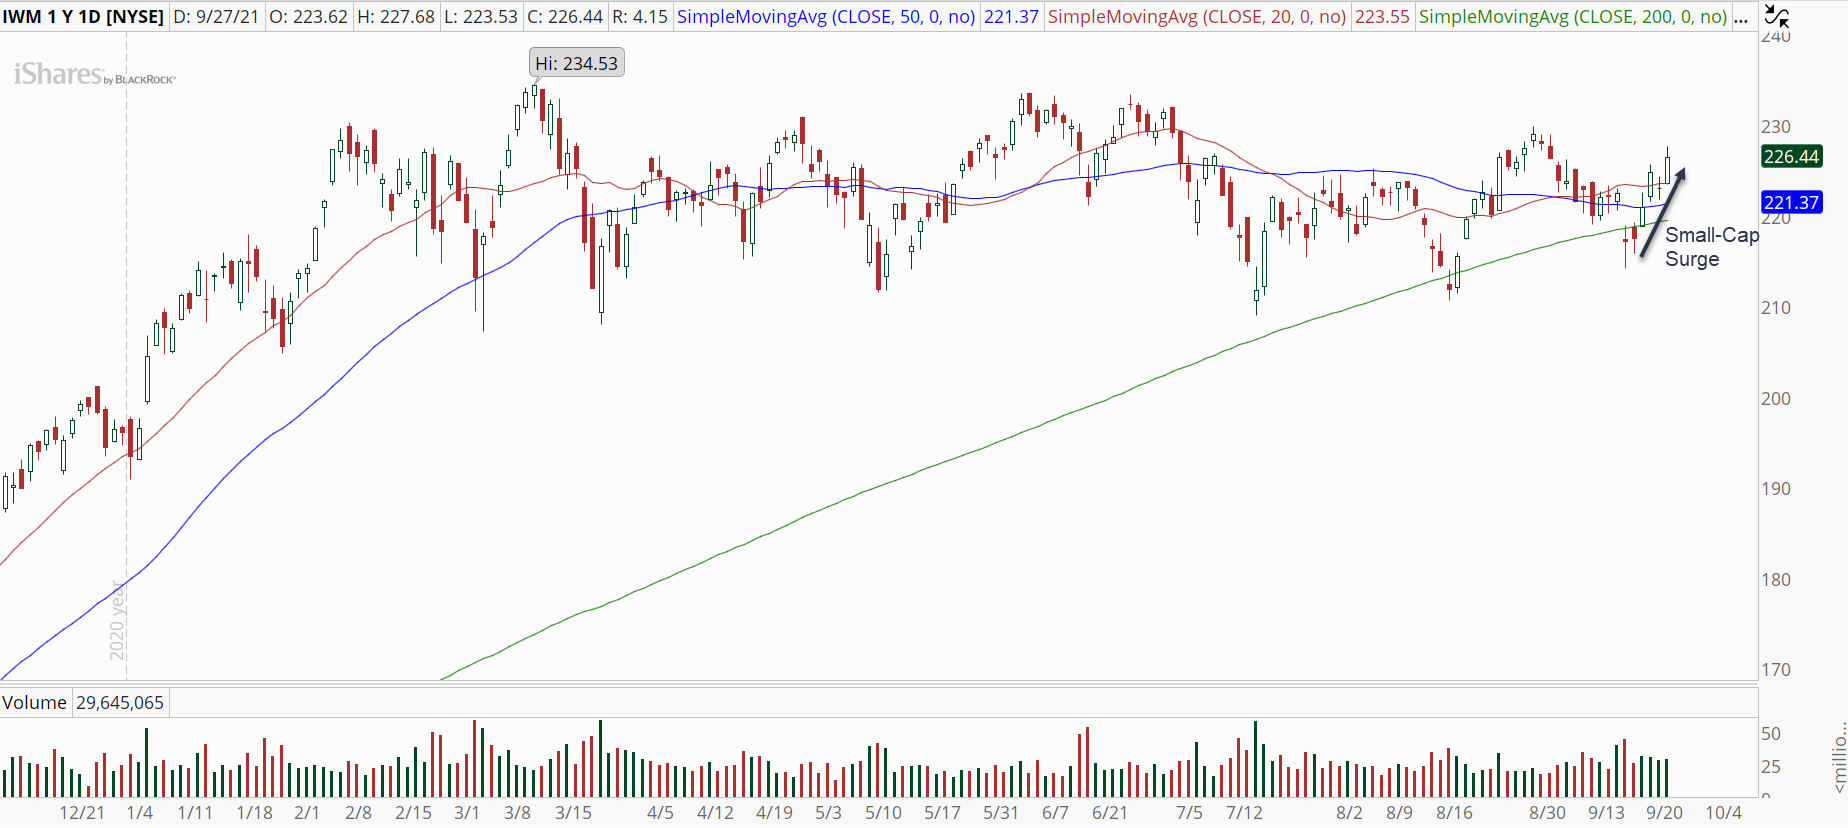 iShares Russell 2000 ETF (IWM) with powerful rally.